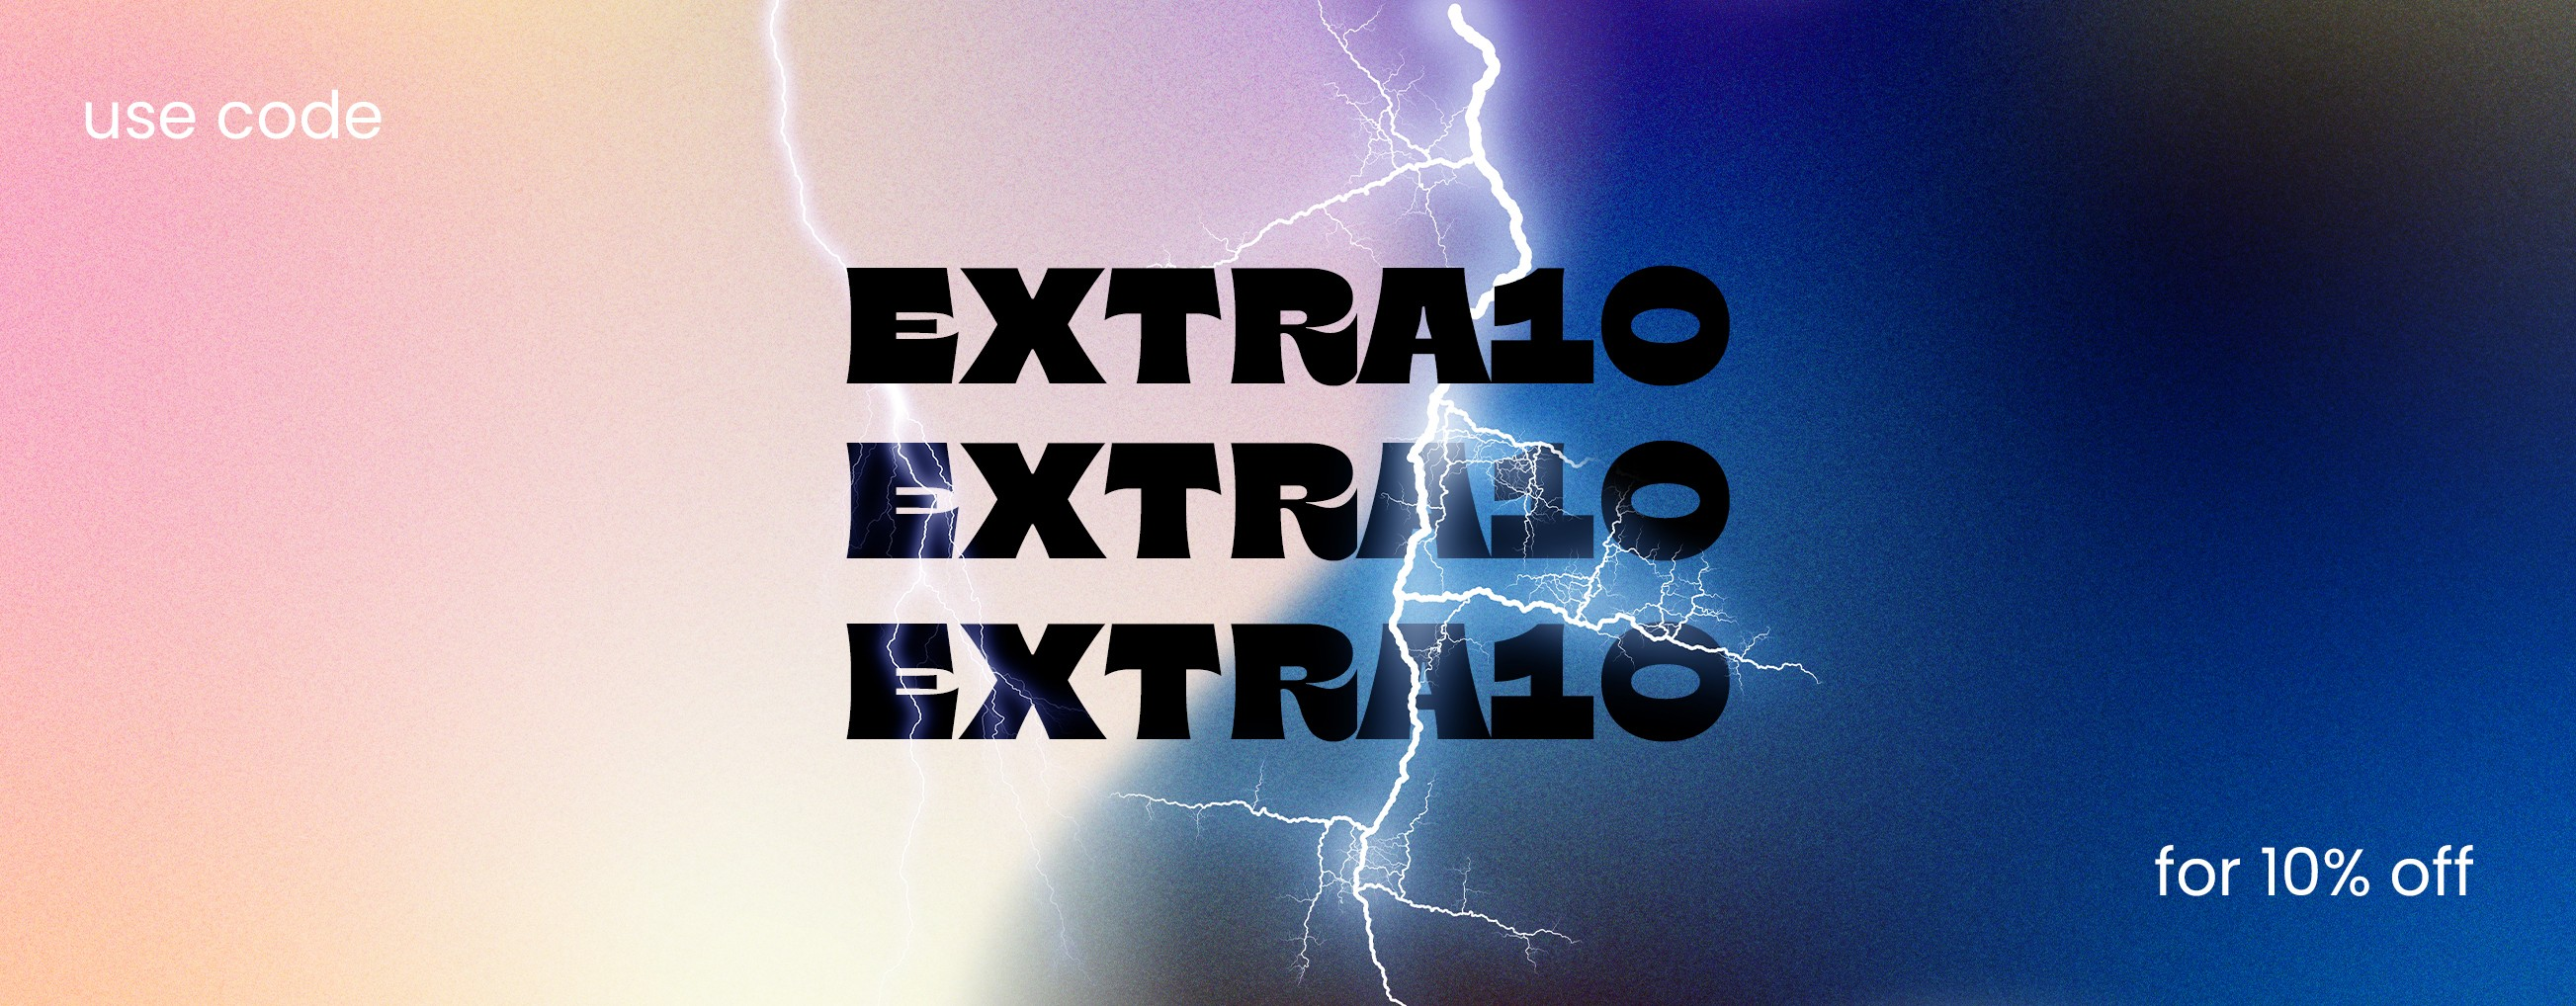 EXTRA10 - FOR 10% OFF